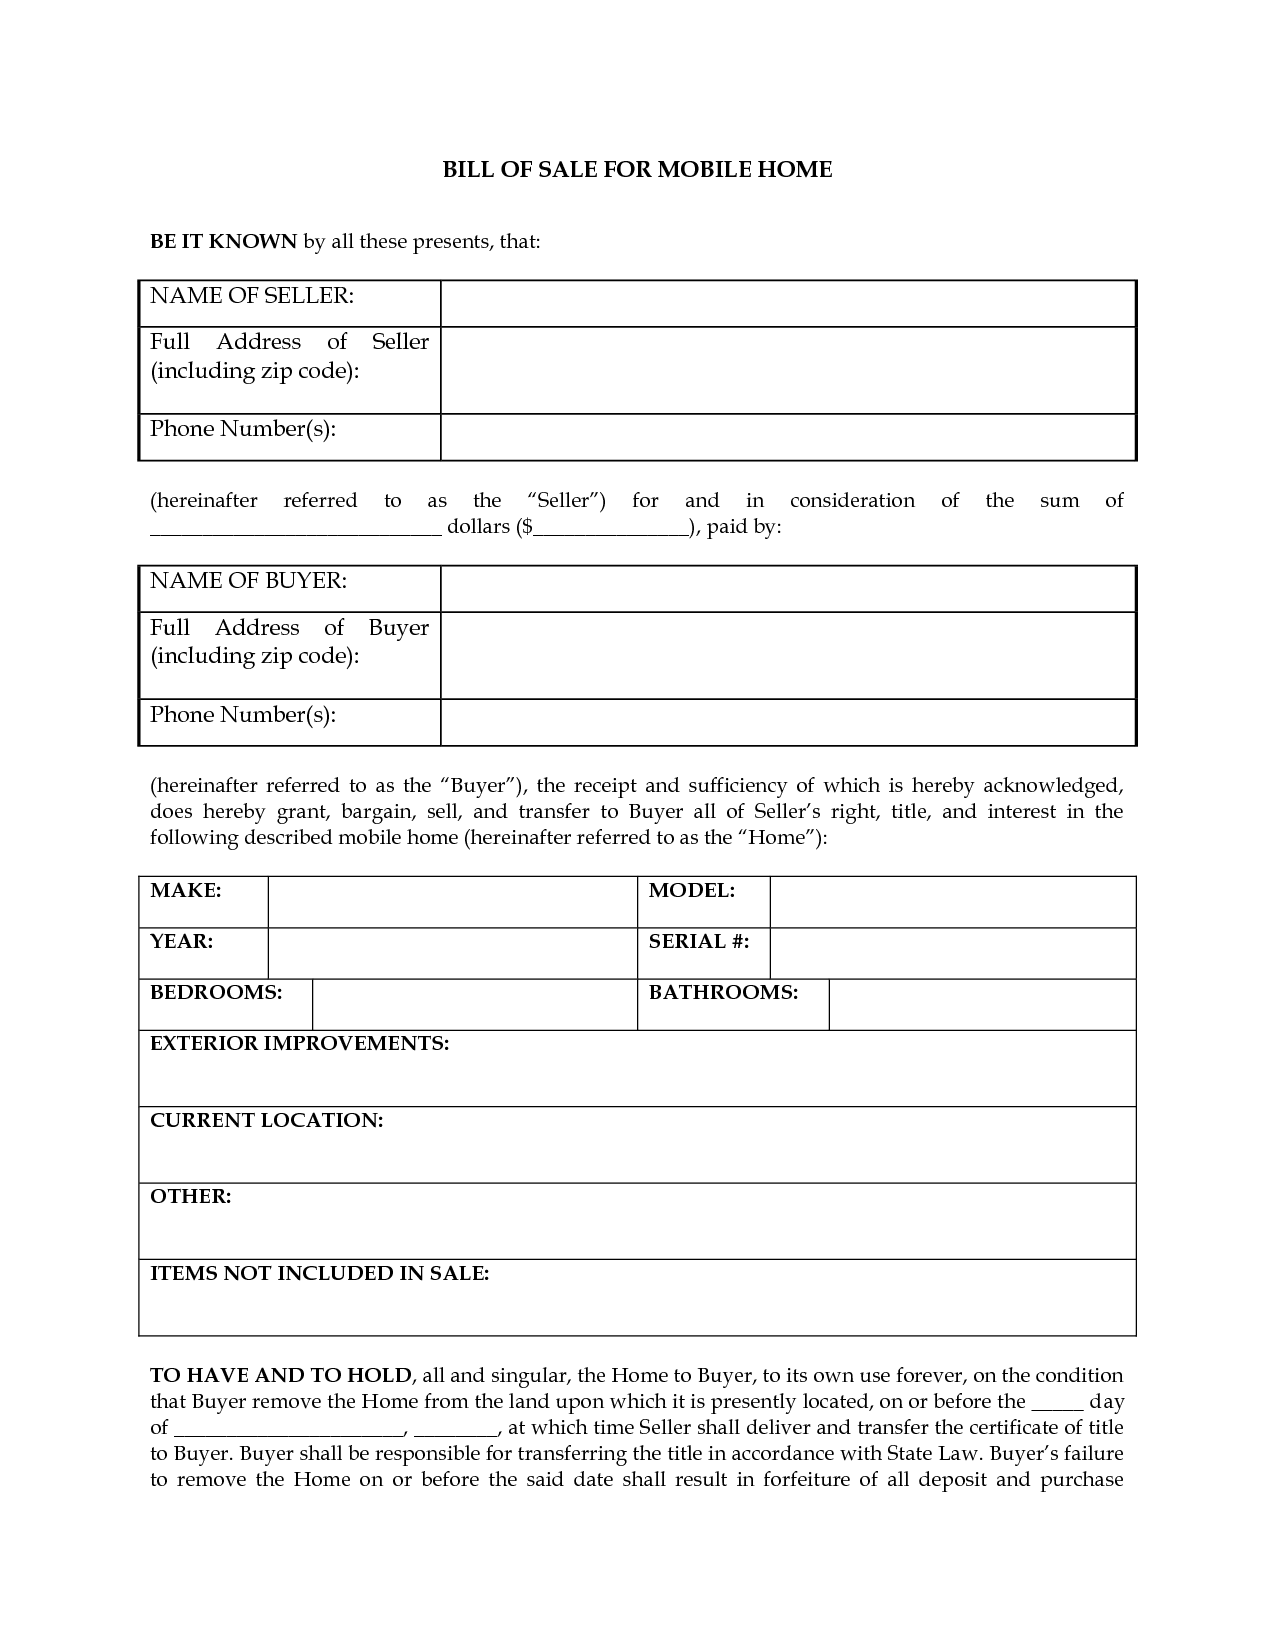 Rv Resume Printable Sample Rv Bill Of Sale Form Form Free Legal